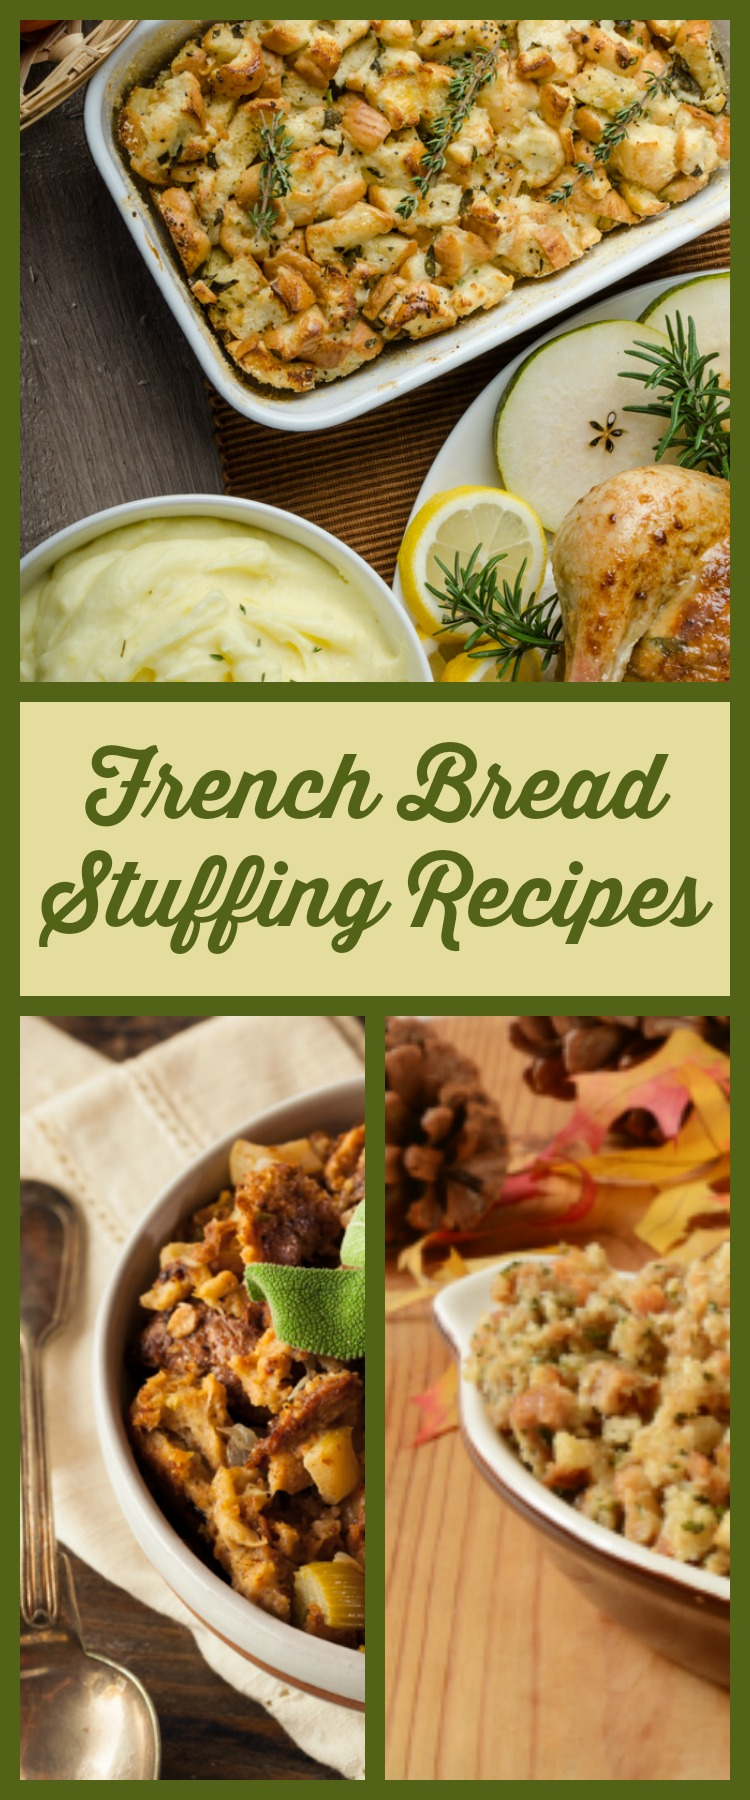 Recipe French Bread Stuffing - There are so many delicious recipes that I created a Pinterest board just so I could collect them all!